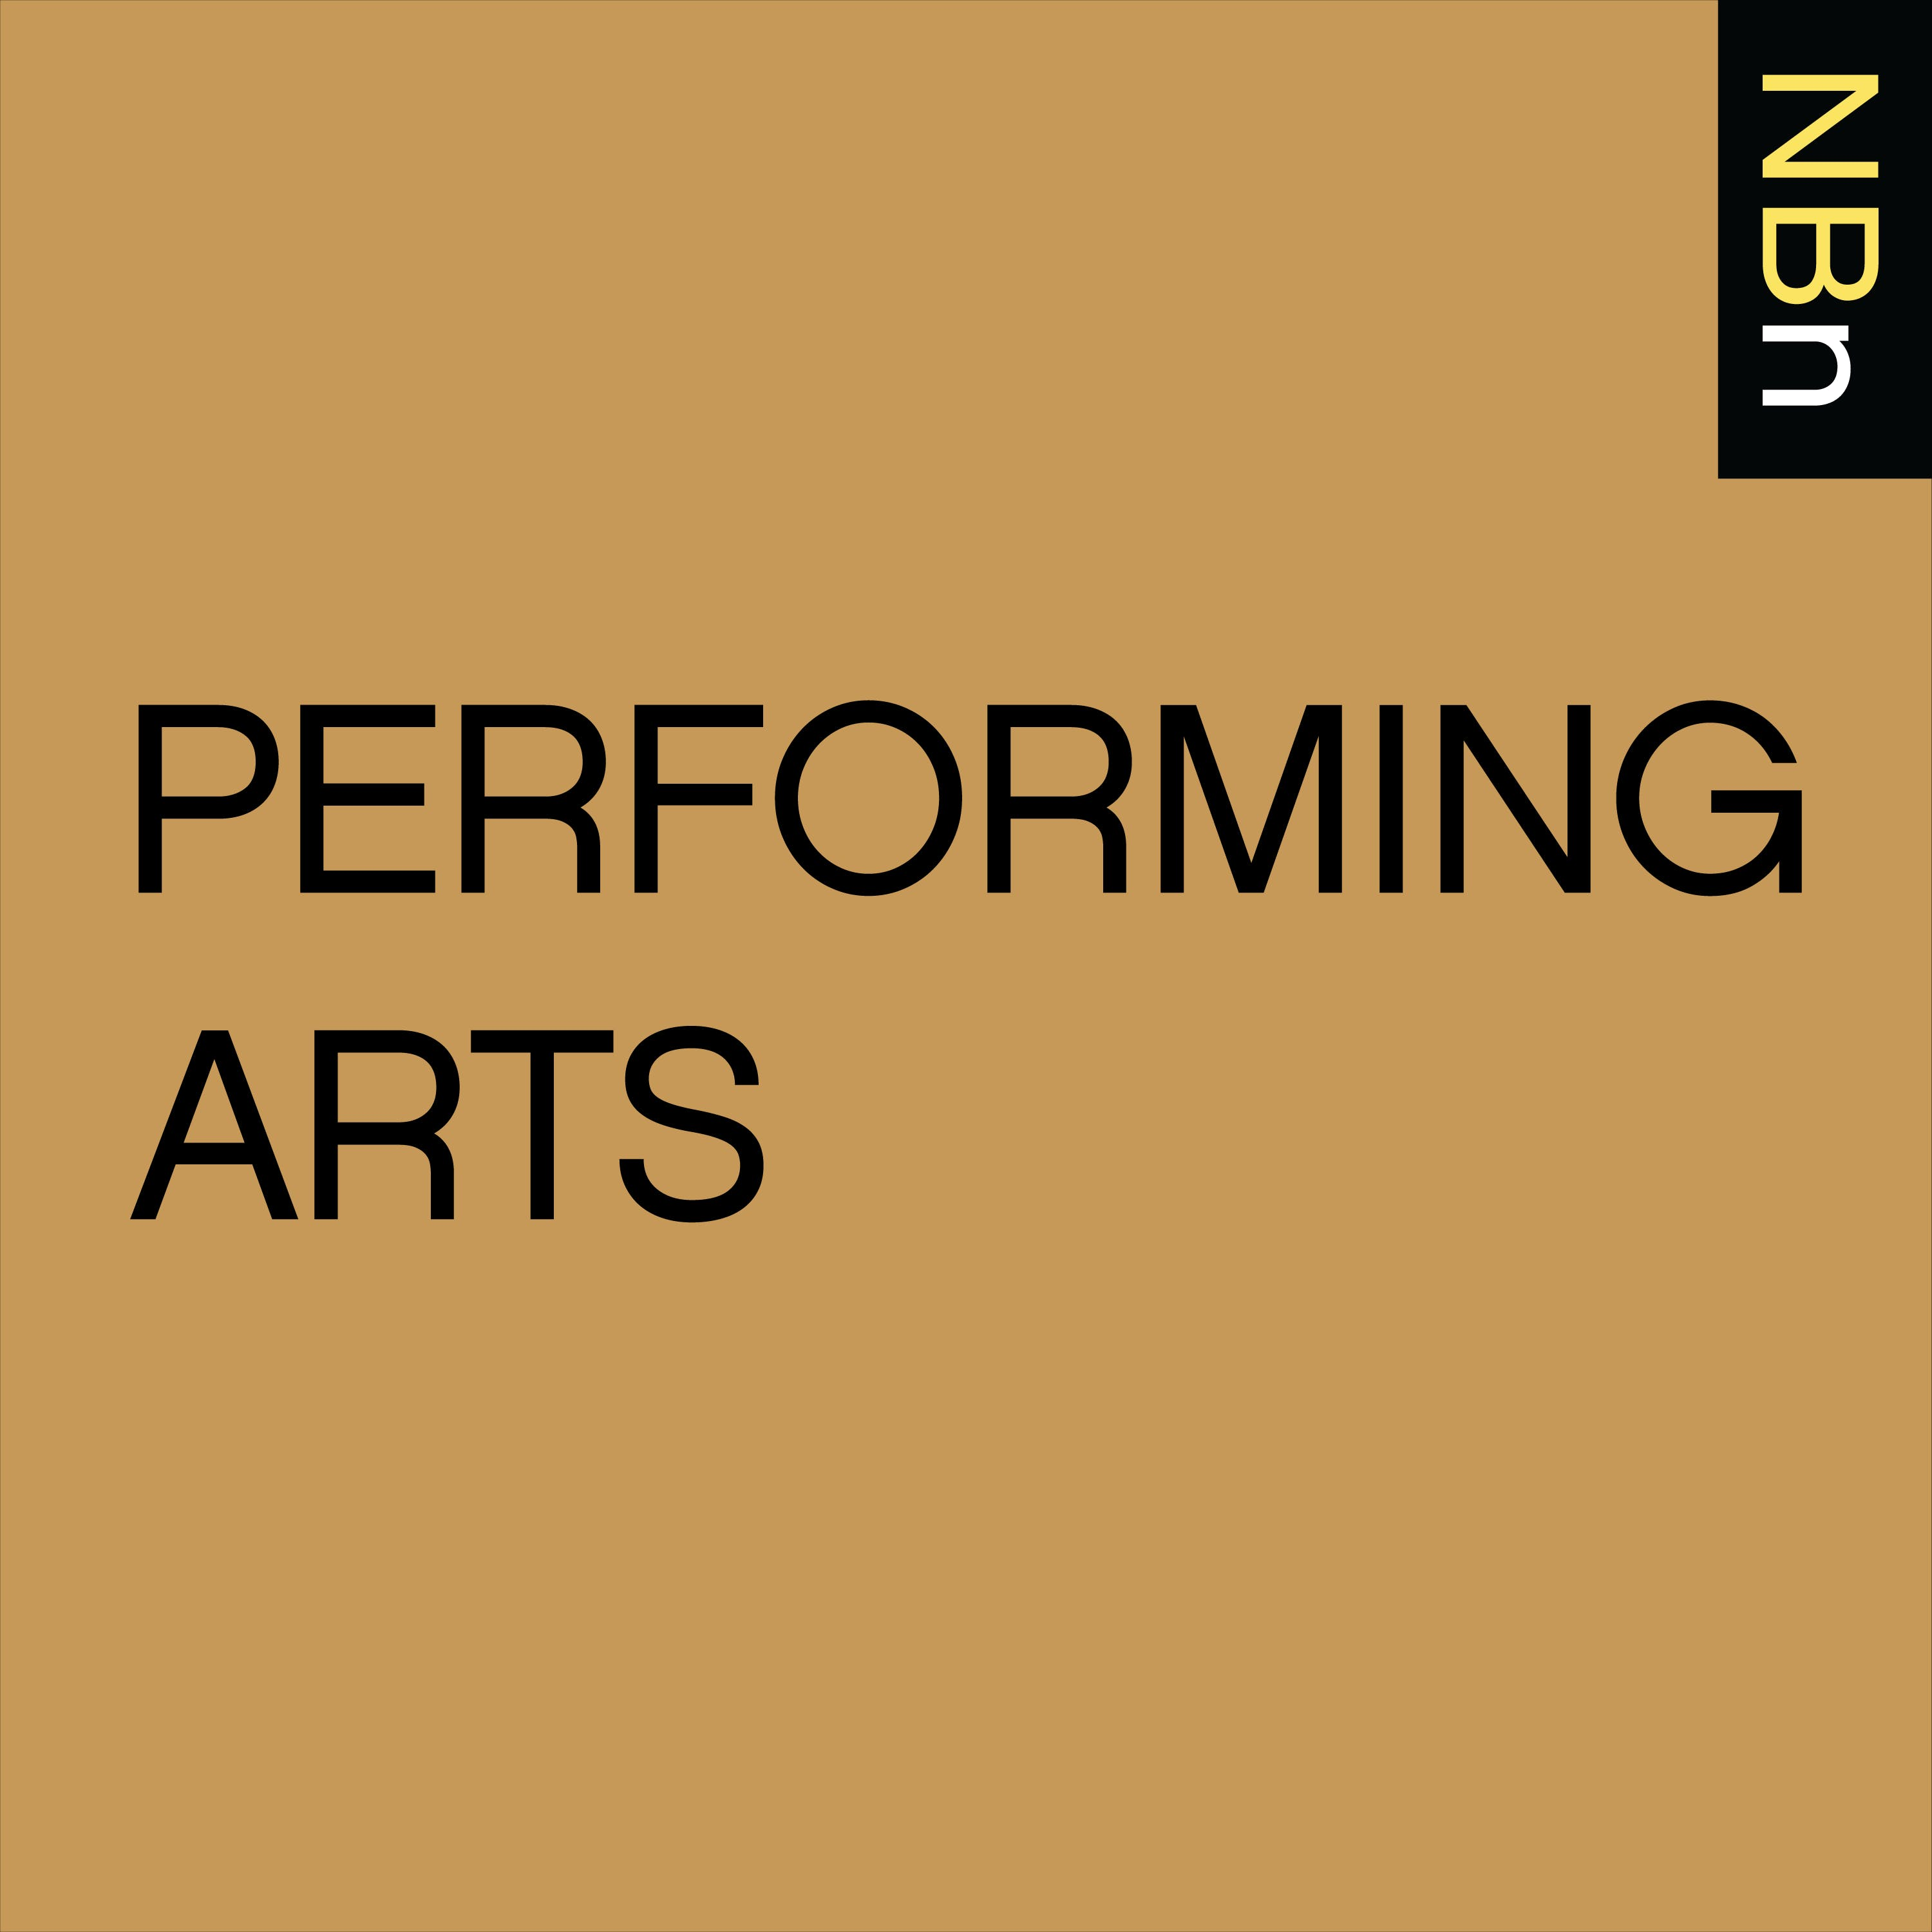 New Books in Performing Arts podcast tile